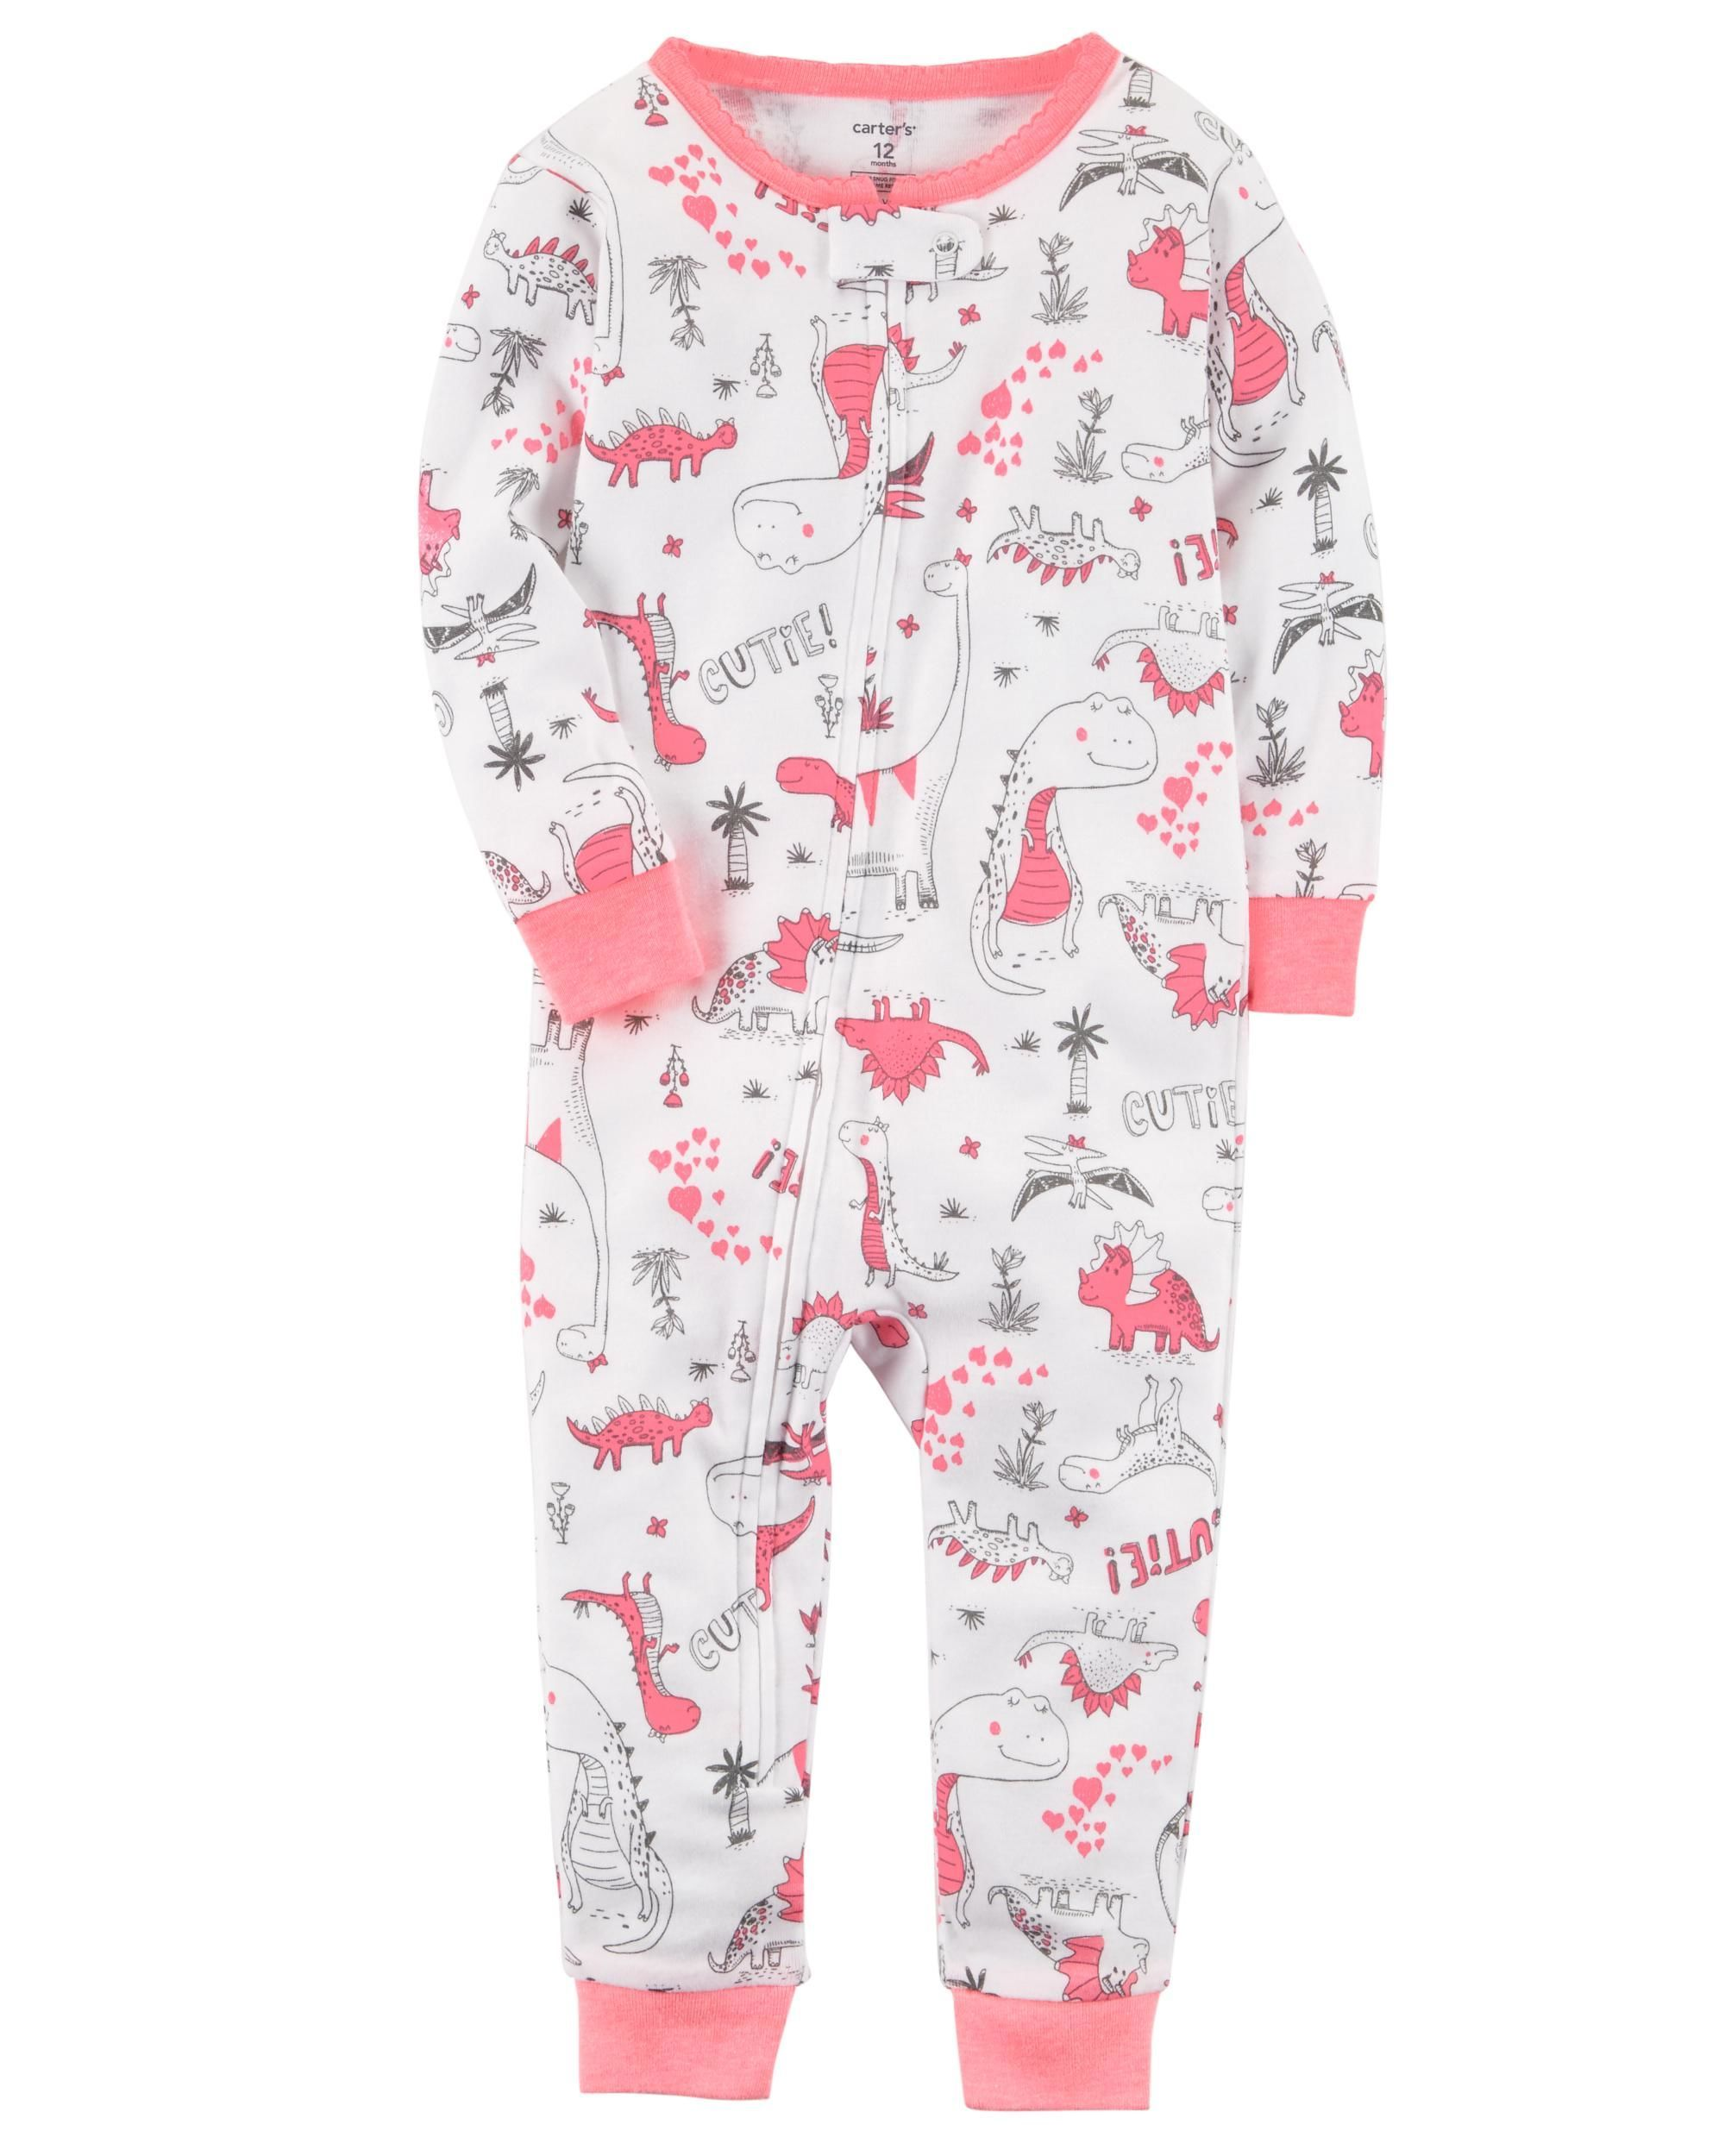 8a914a2c2344 Baby Girl 1-Piece Dinosaur Snug Fit Cotton Footless PJs